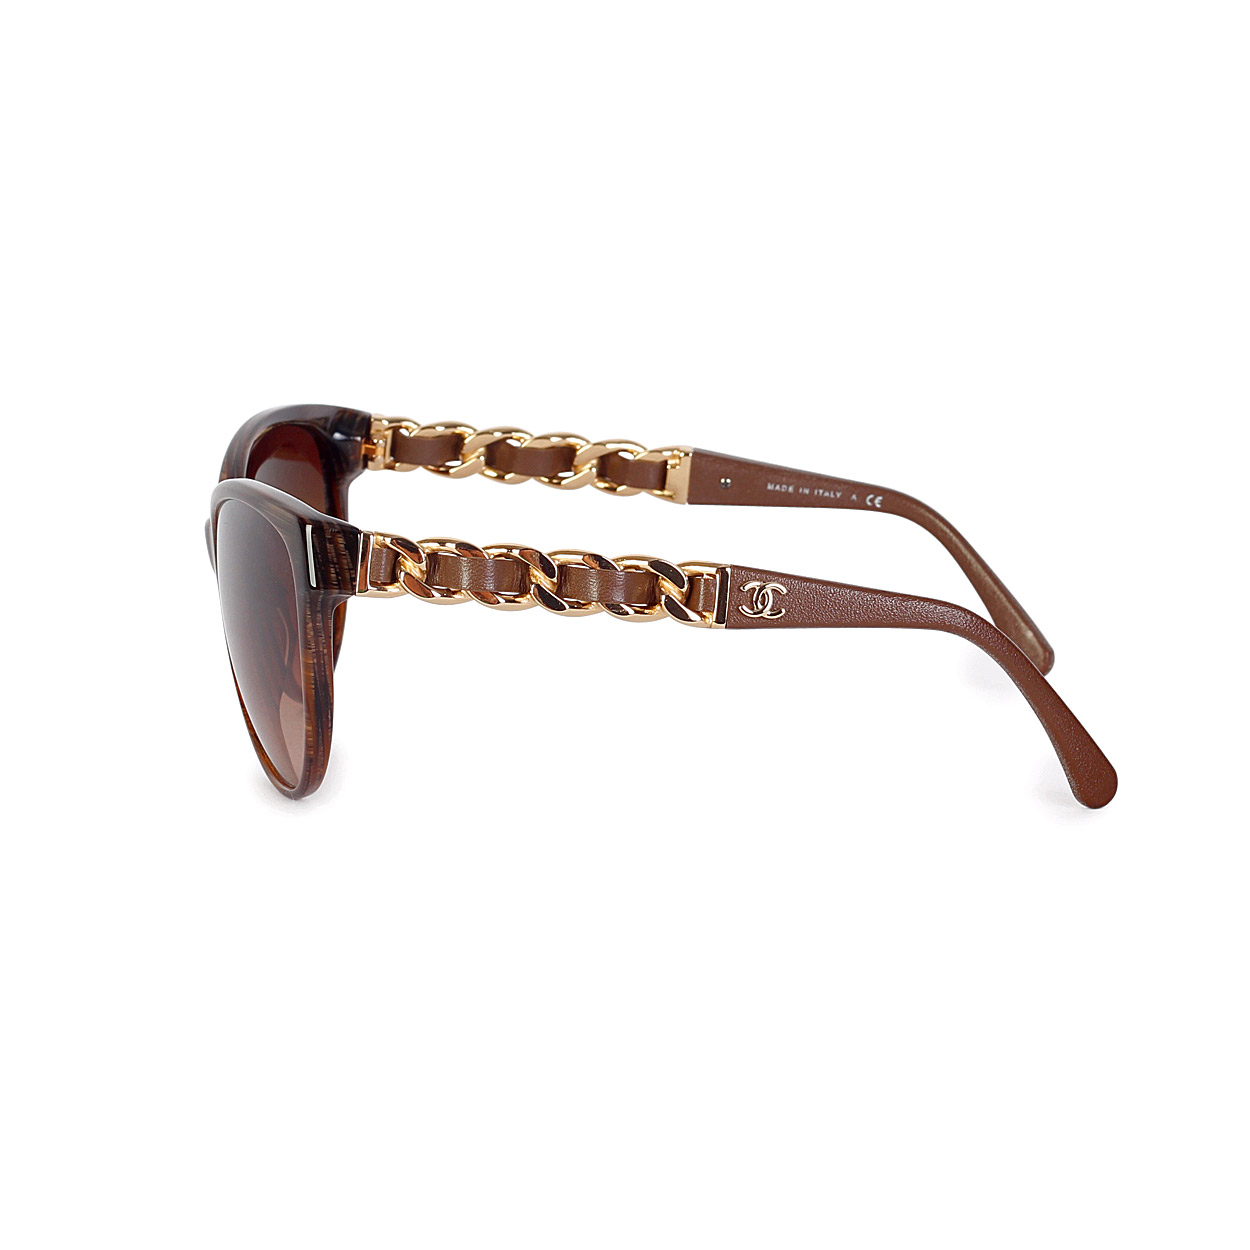 New Chanel Sunglasses  chanel erfly chain sunglasses light tortoise new luxity